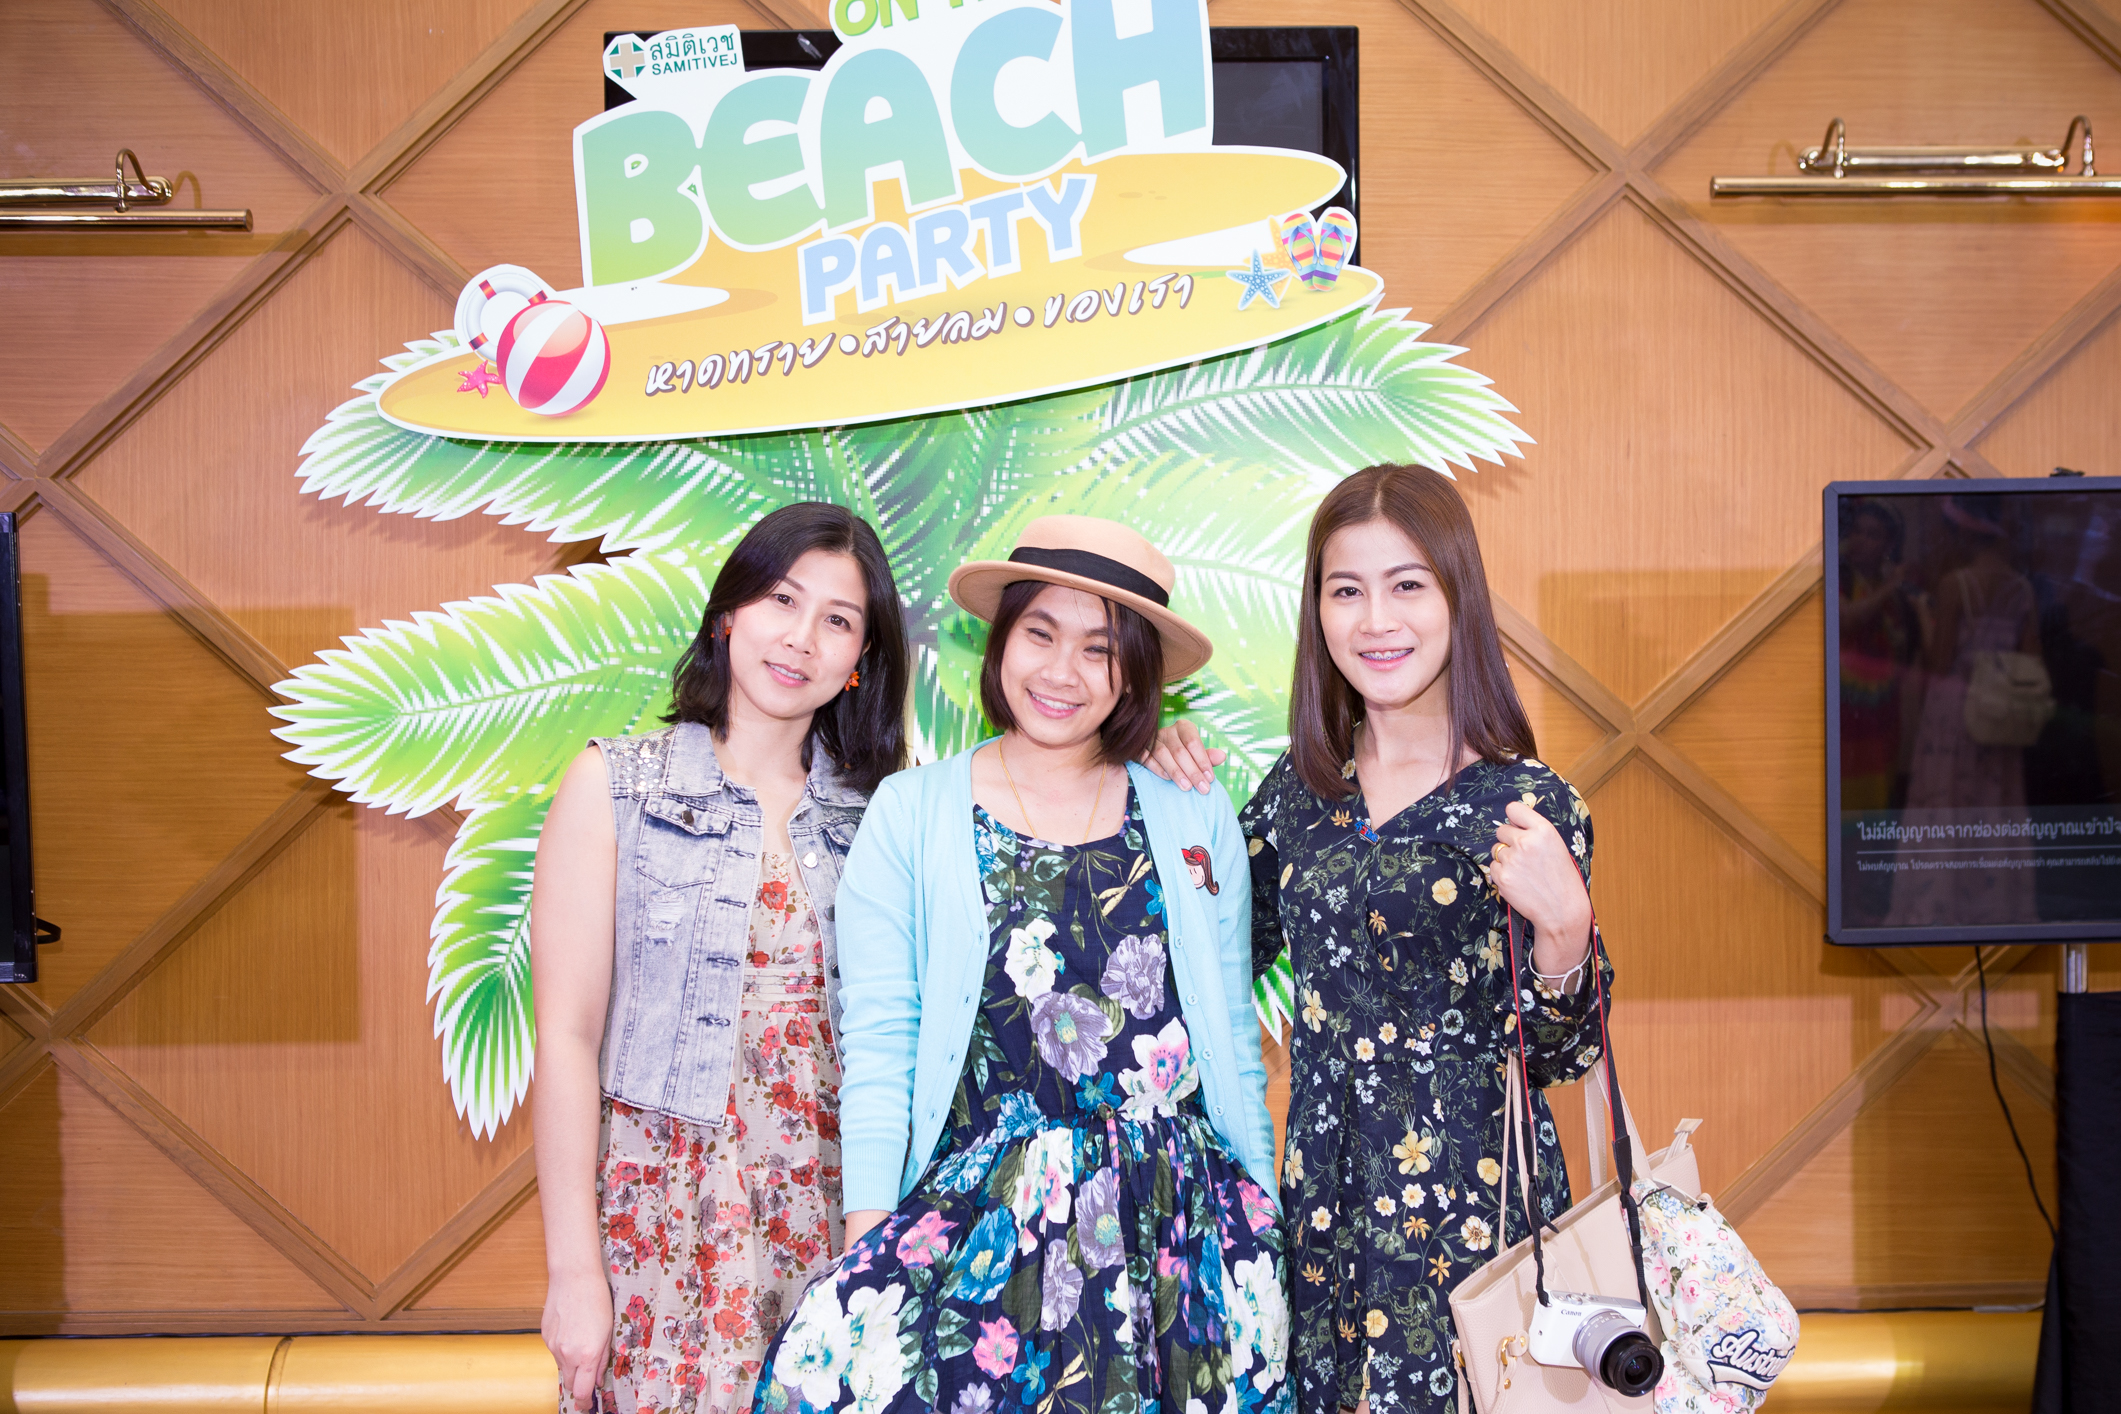 party-538